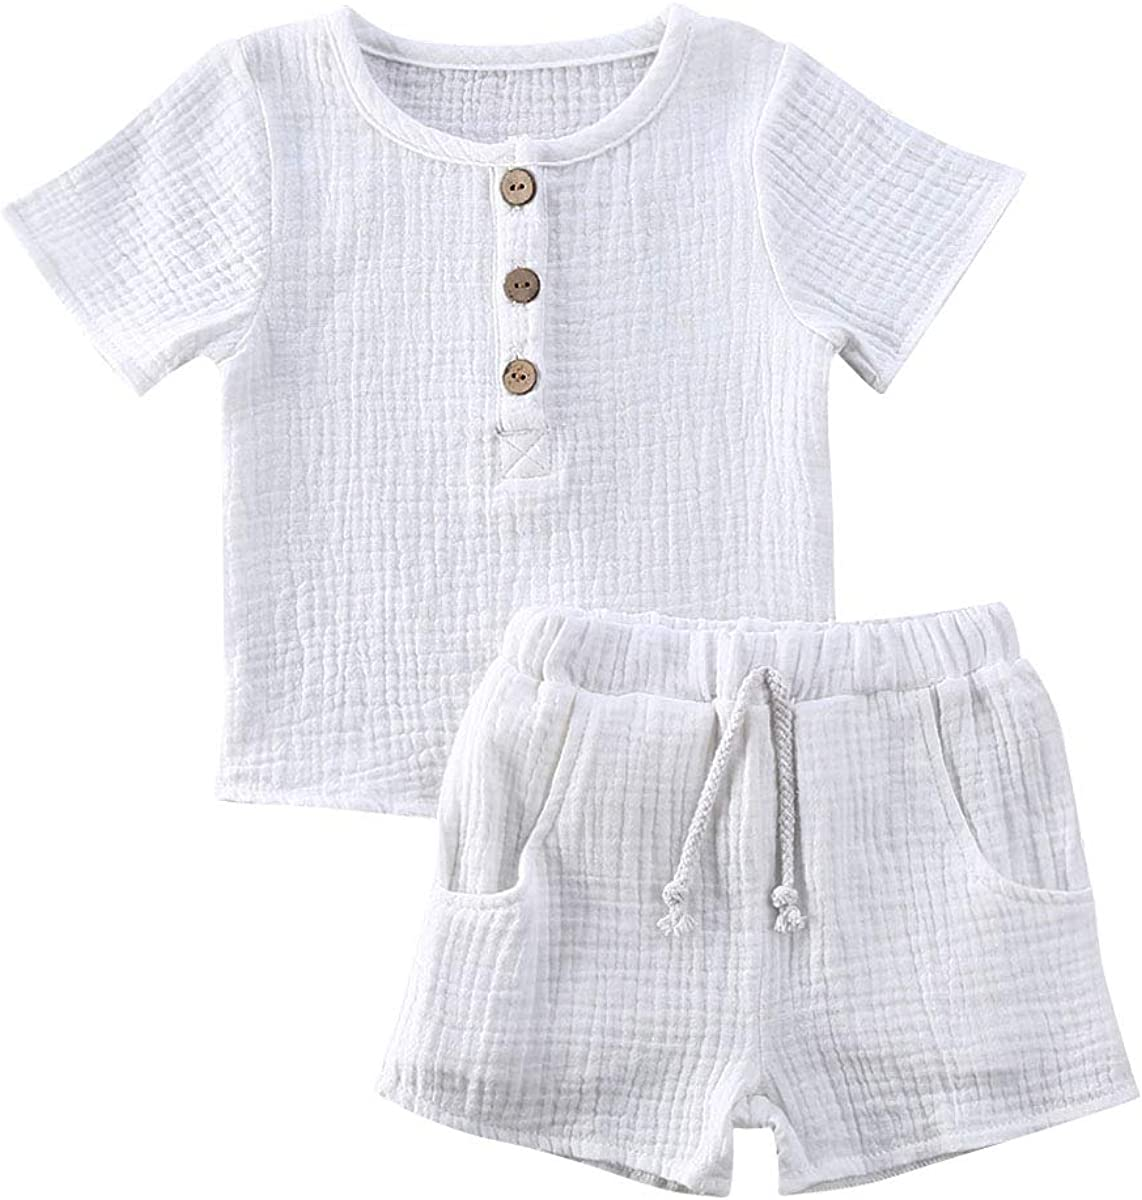 Kids Toddler Girls Summer Clothing Button Short-Sleeve Top Shirt+Drawstring Shorts Outfits Clothes